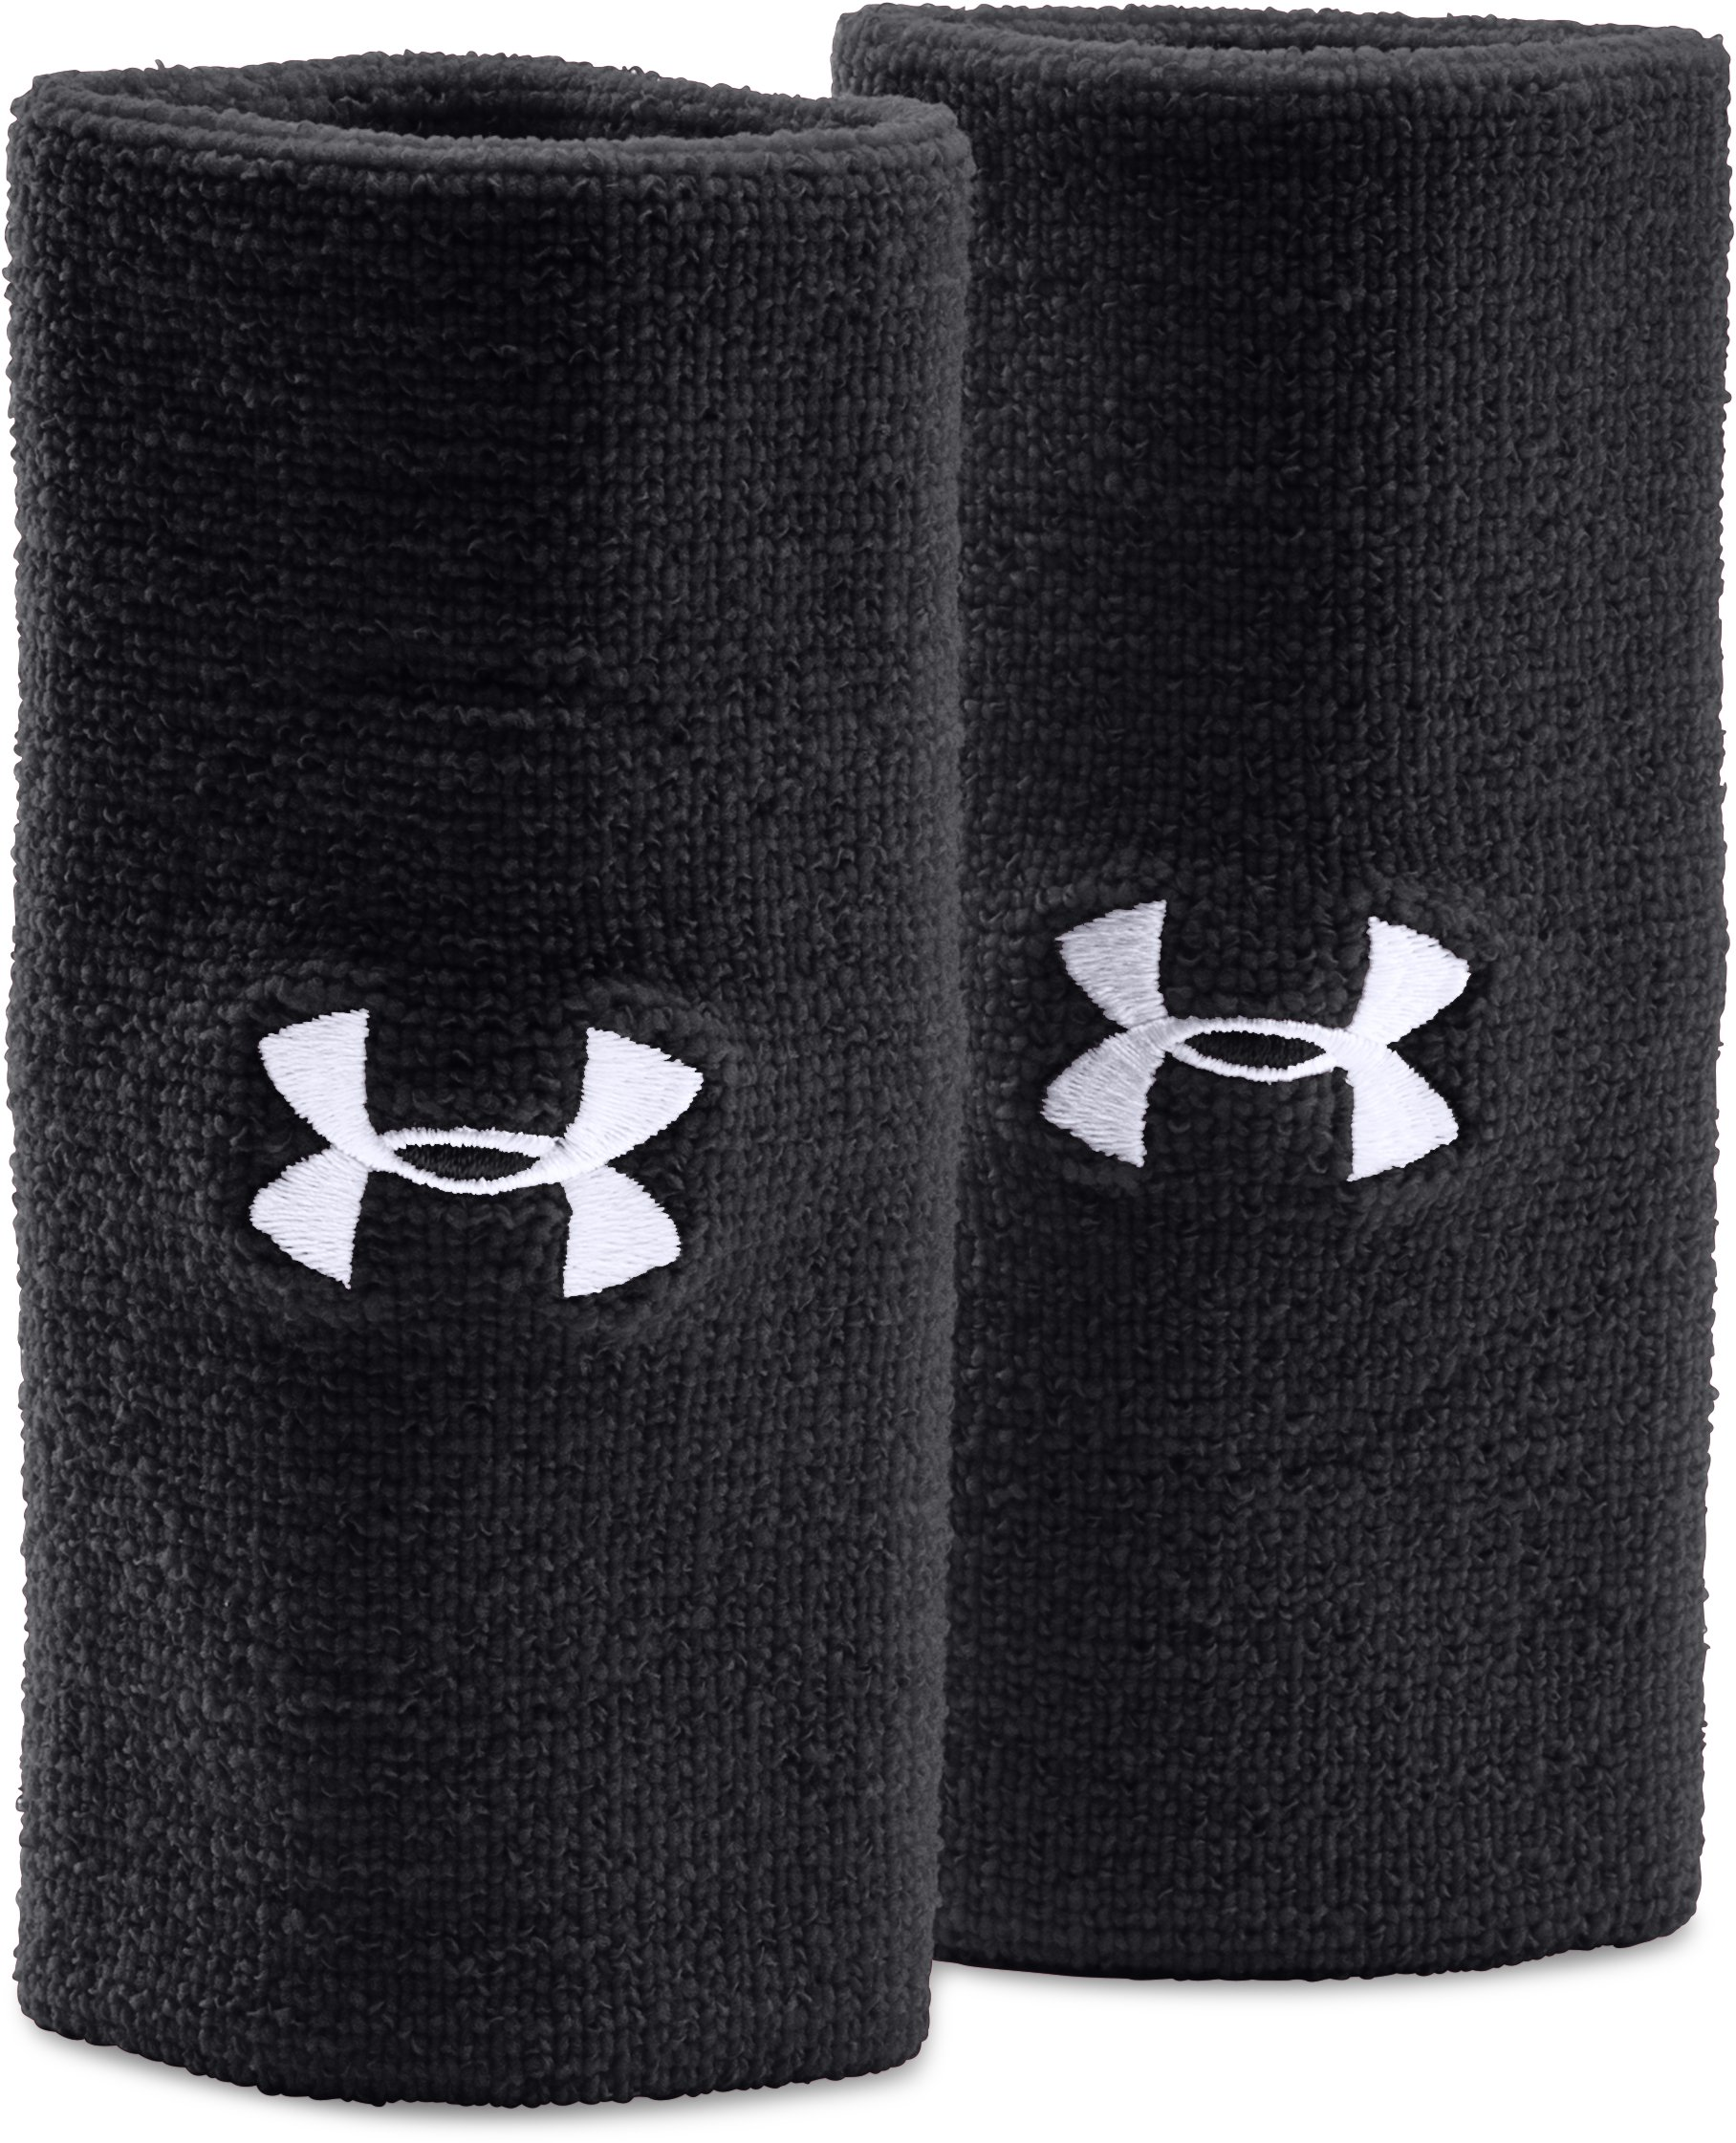 "running wristbands 6"" UA Performance Wristband 2-Pack Great protection for kettlebell lifting...Excellent wristbands !!!...Soaks up sweat nice and evenly."